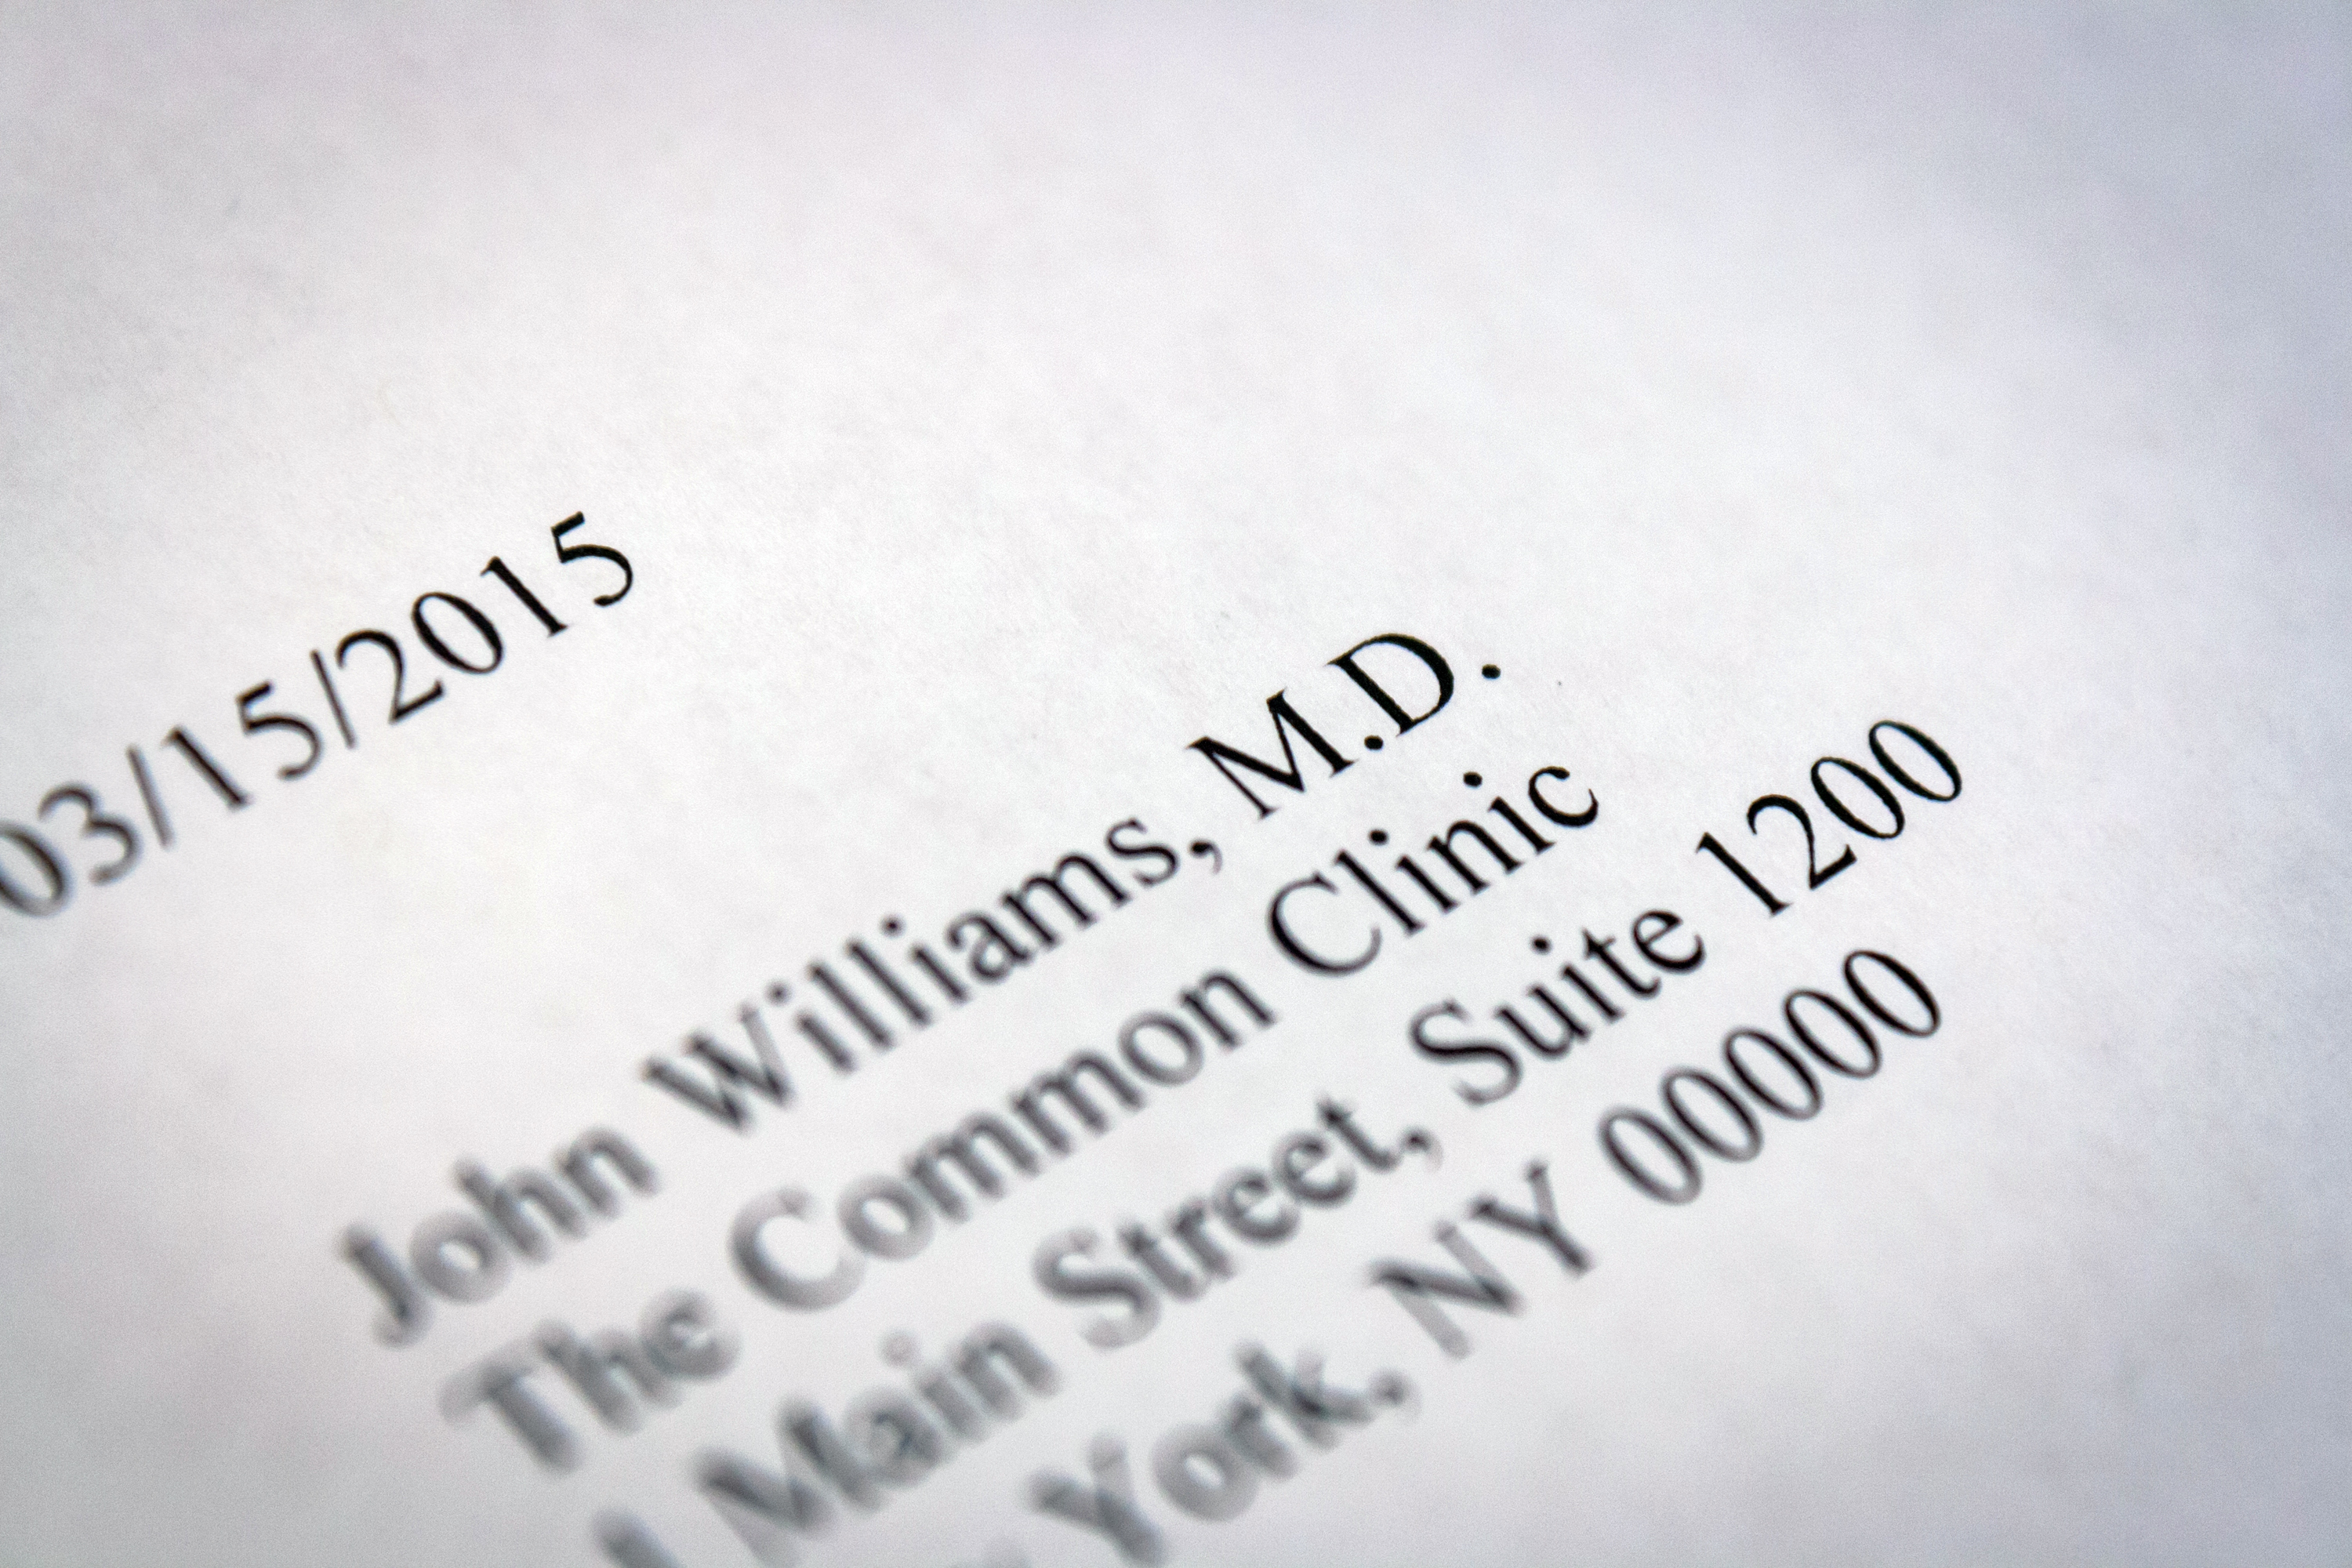 how to address a letter to a doctor our everyday life for example if your doctor s is stephen williams your first line should stephen williams md note that it s redundant to include